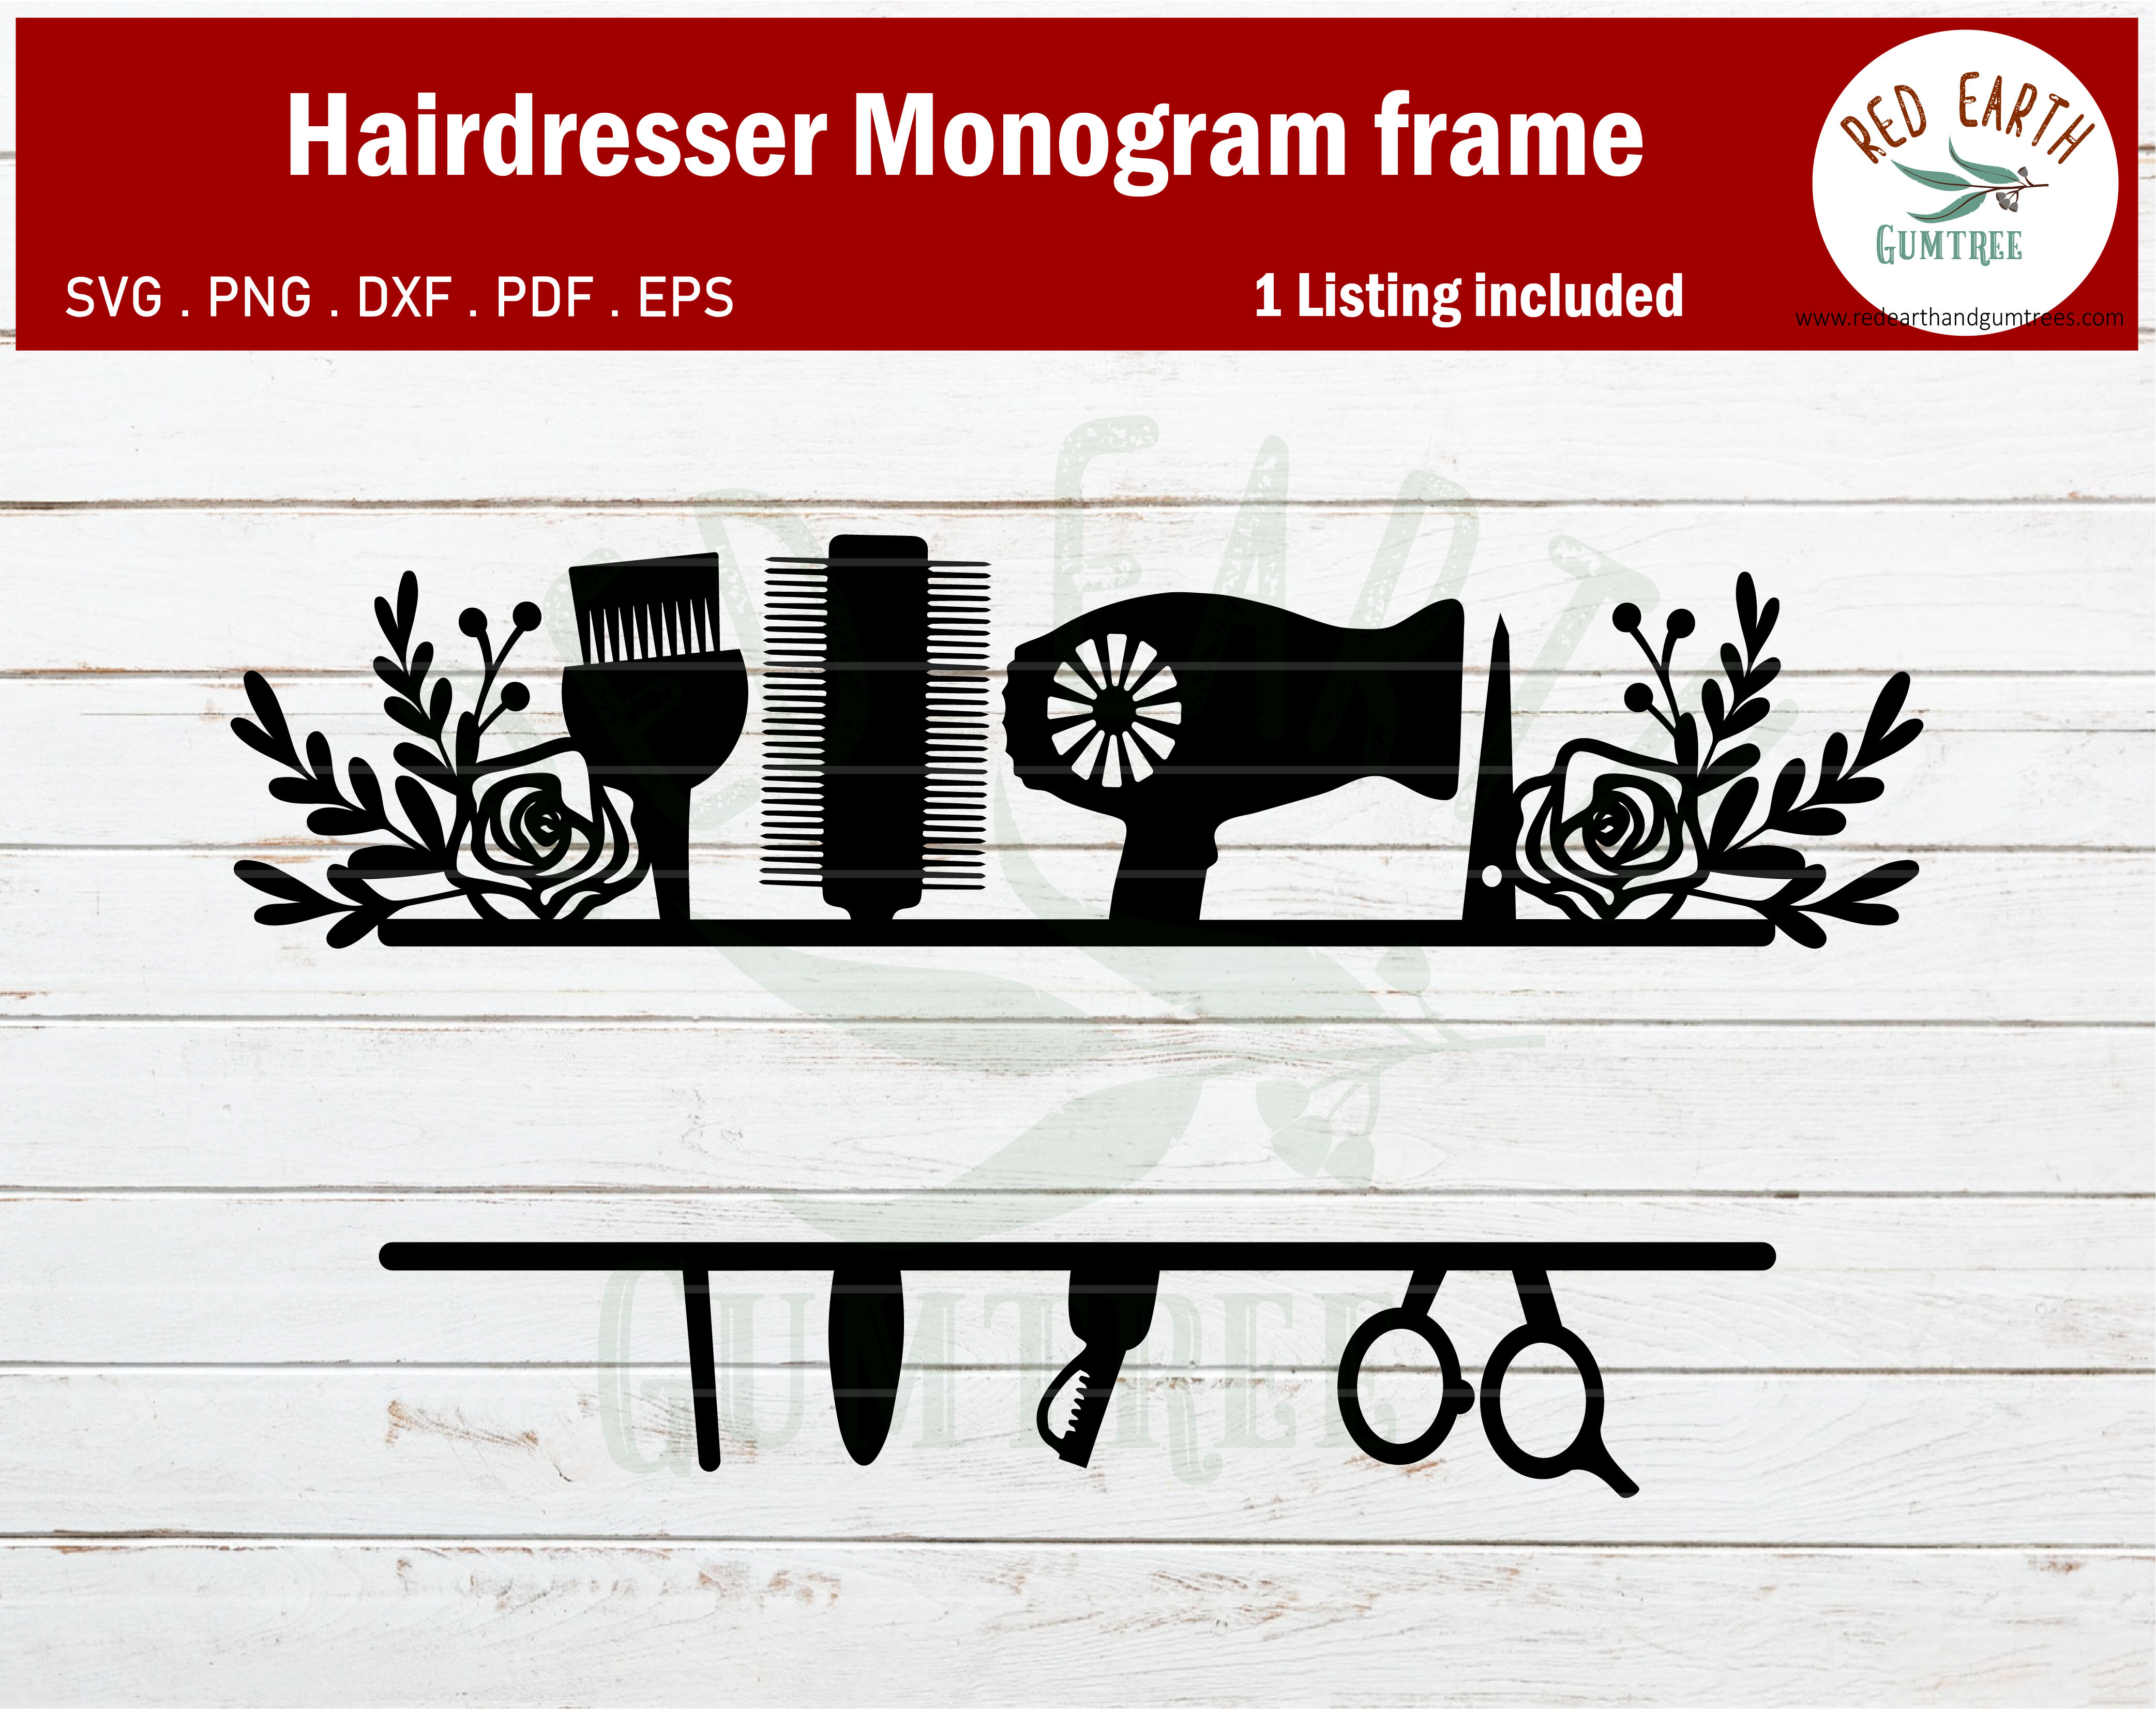 Floral Hairstylist Monogram Frame Bundle Svg Hair Dresser Monogram